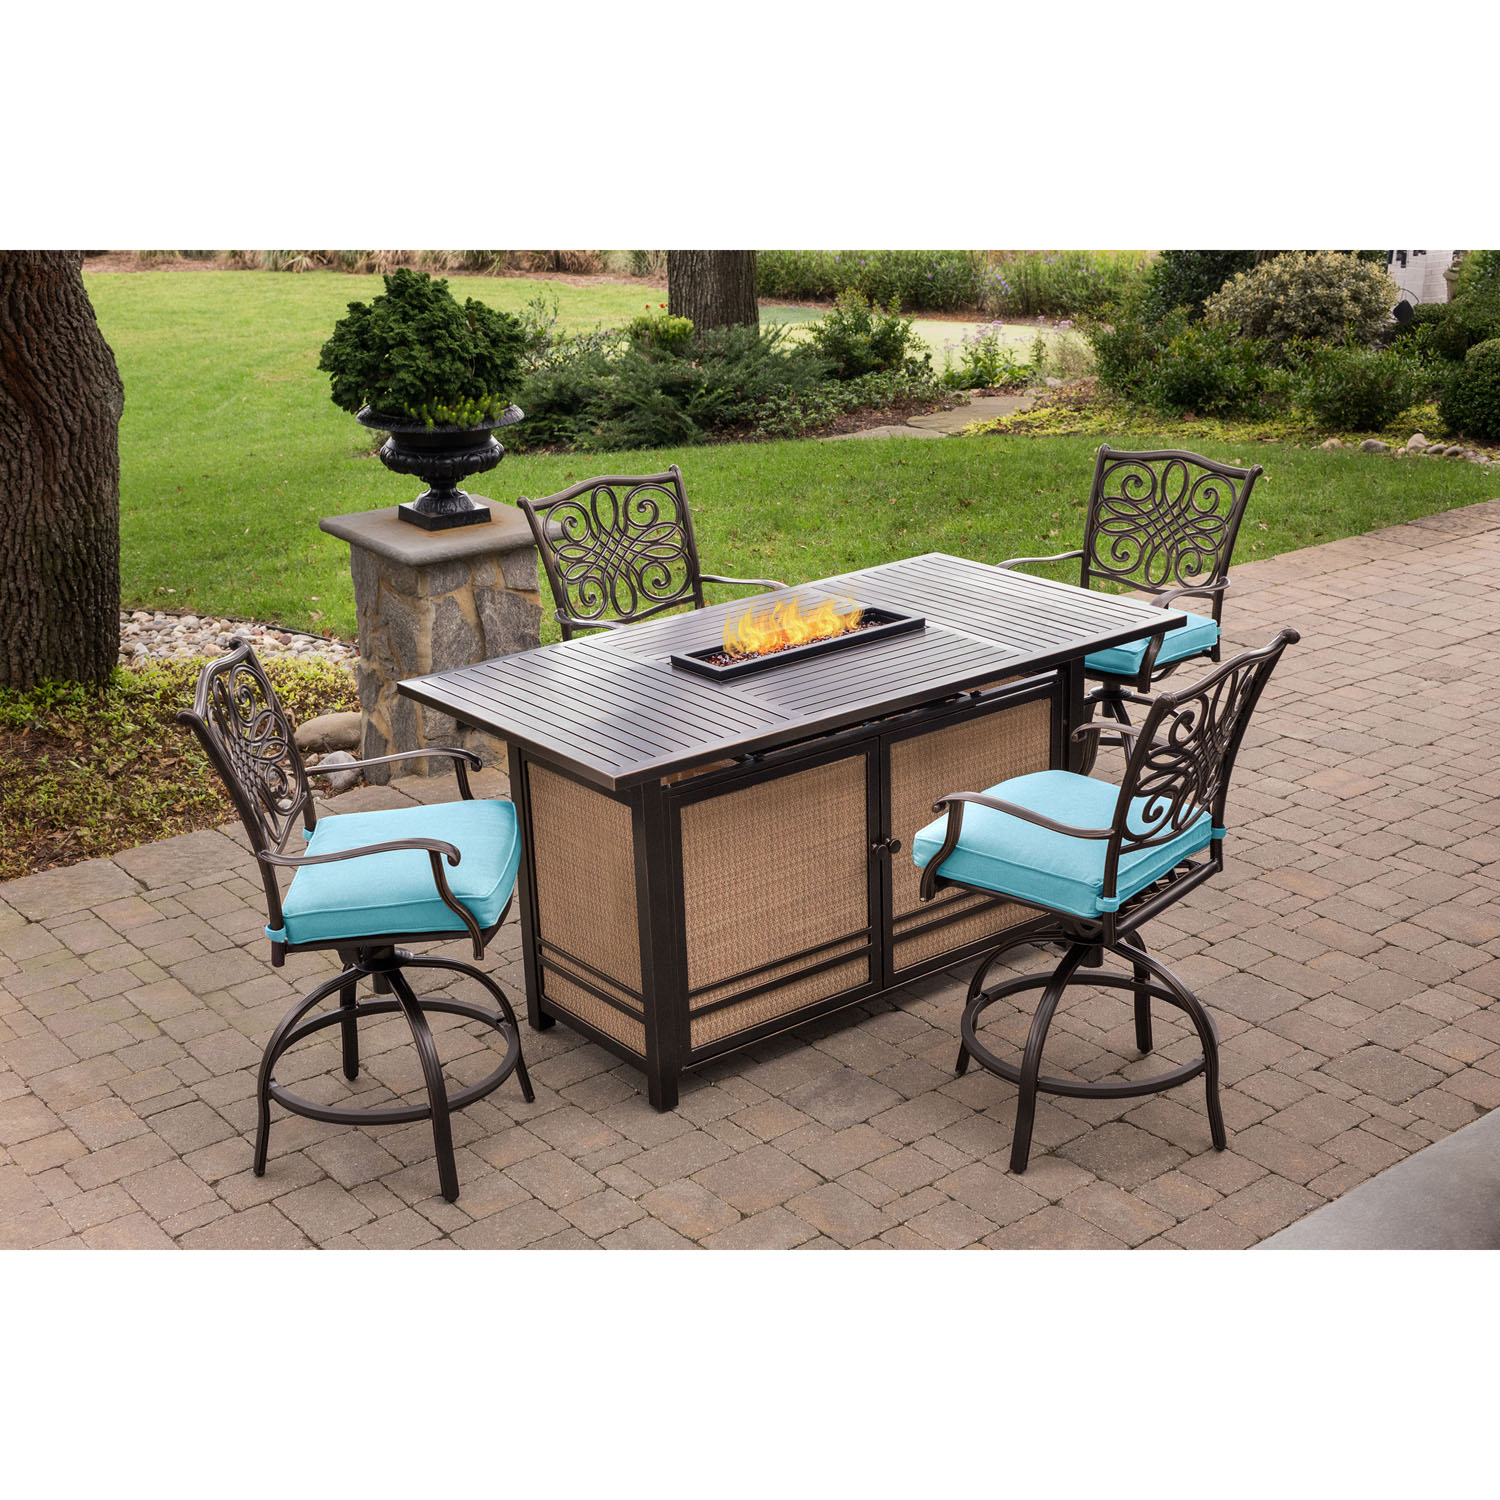 hanover traditions 5 piece high dining set in blue with 4 swivel chairs and a 30 000 btu fire. Black Bedroom Furniture Sets. Home Design Ideas